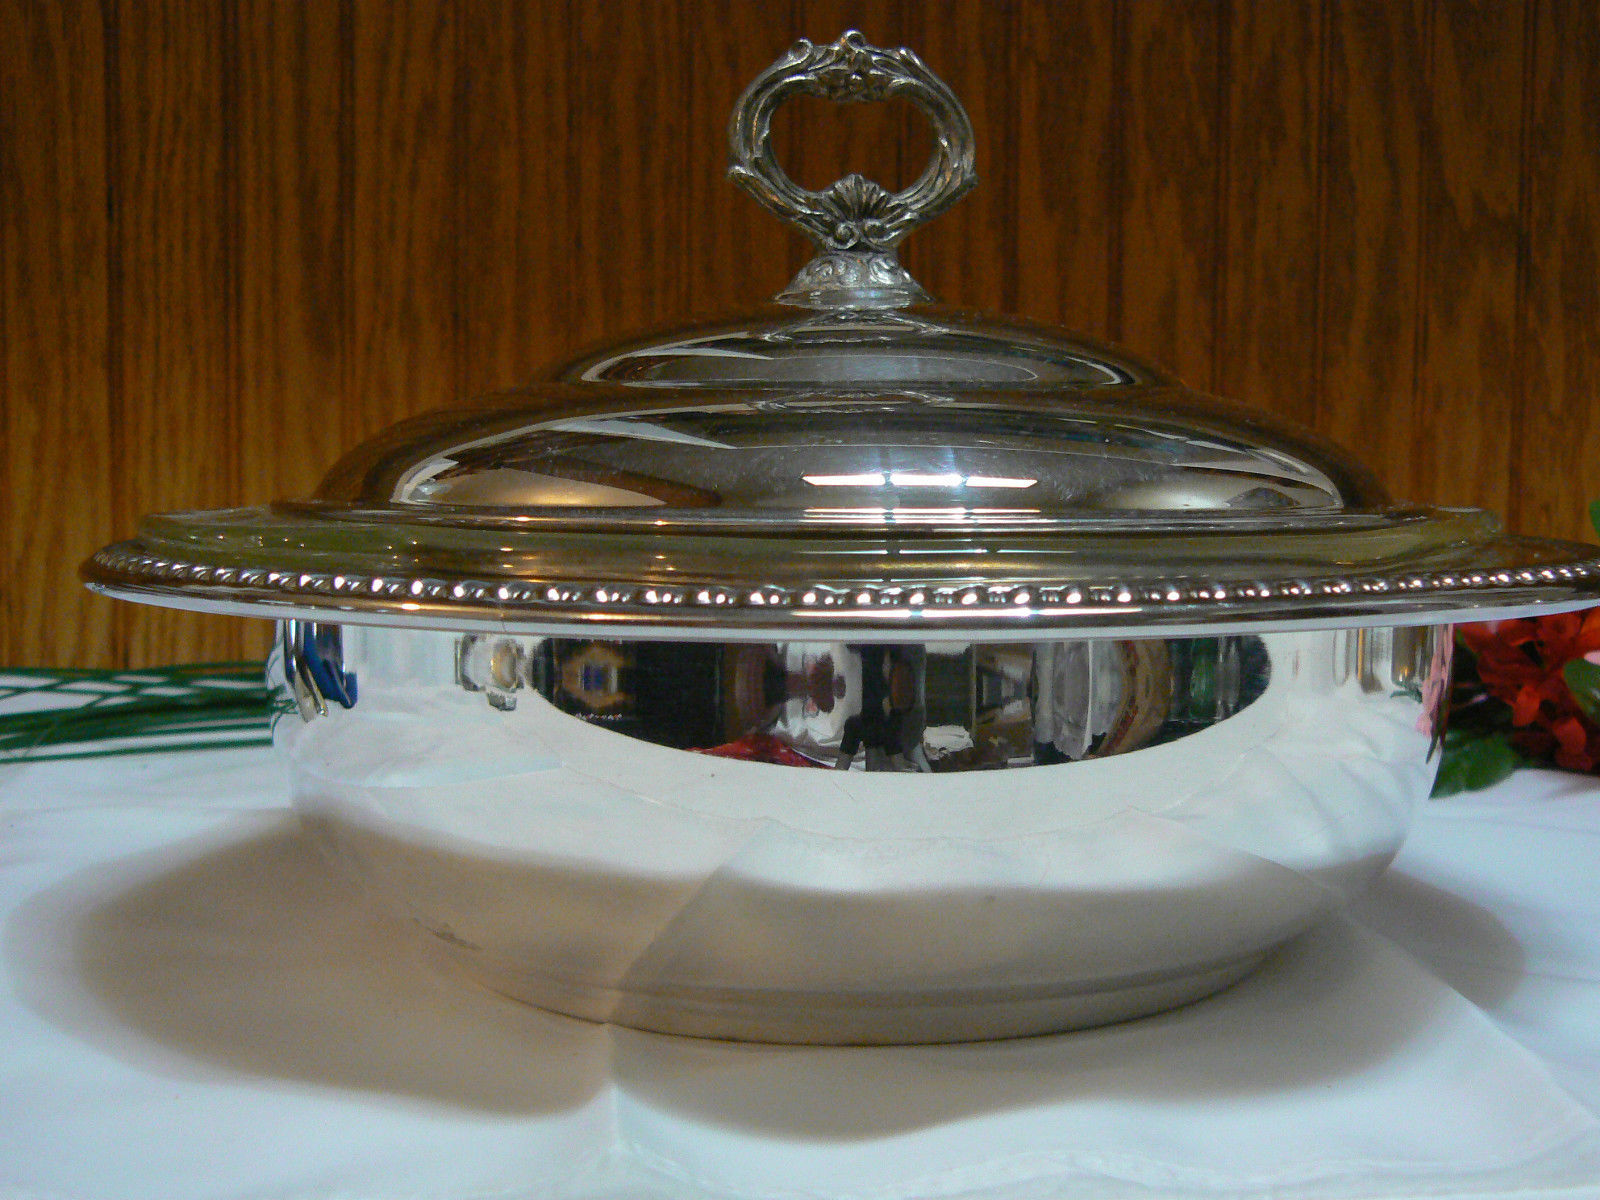 Vintage Sheridan Silver Co Silverplate Covered Serving Bowl/Dish Anchor Hocking